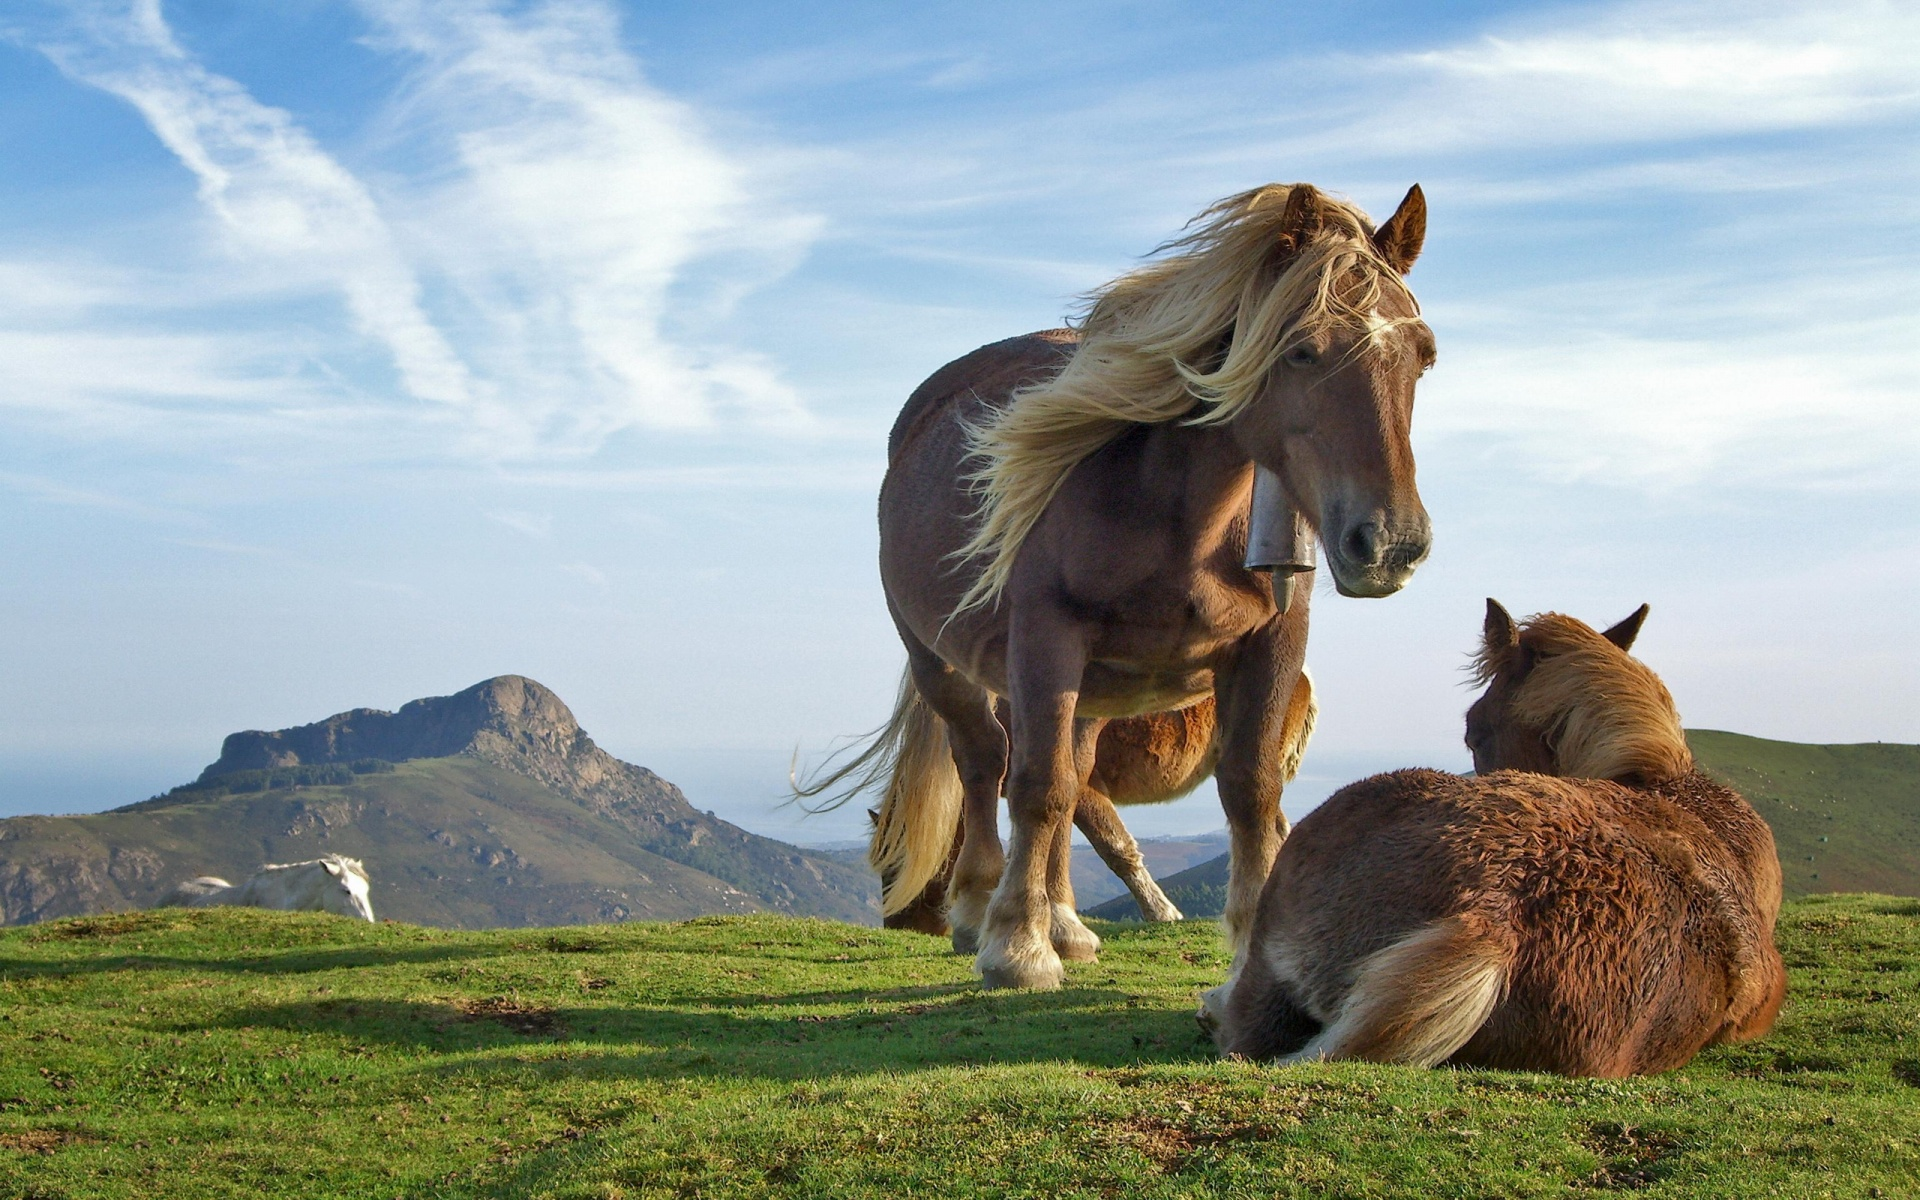 Desktop wallpapers horse themes beautiful themed horses